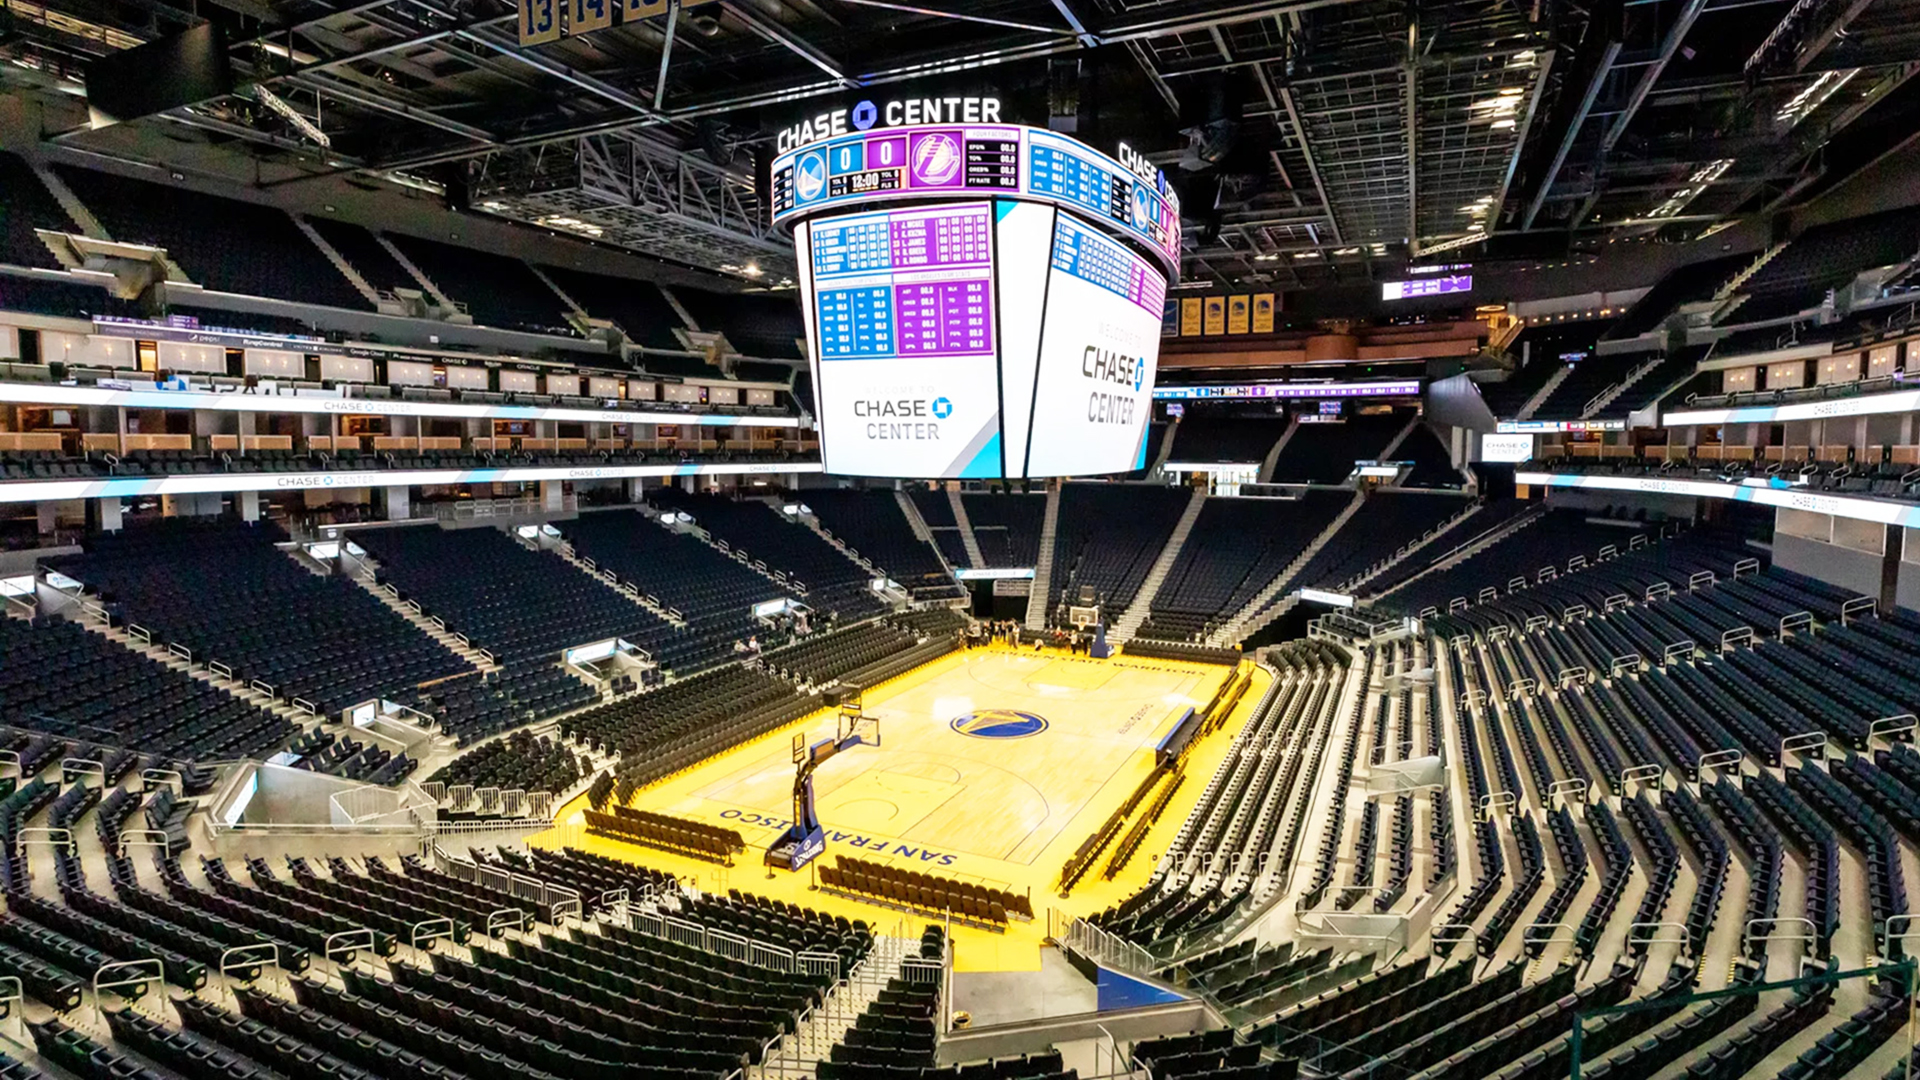 Chase Center Arena. Virtual background to use on Zoom, Microsoft Teams, Skype, Google Meet, WebEx or any other campatible app.